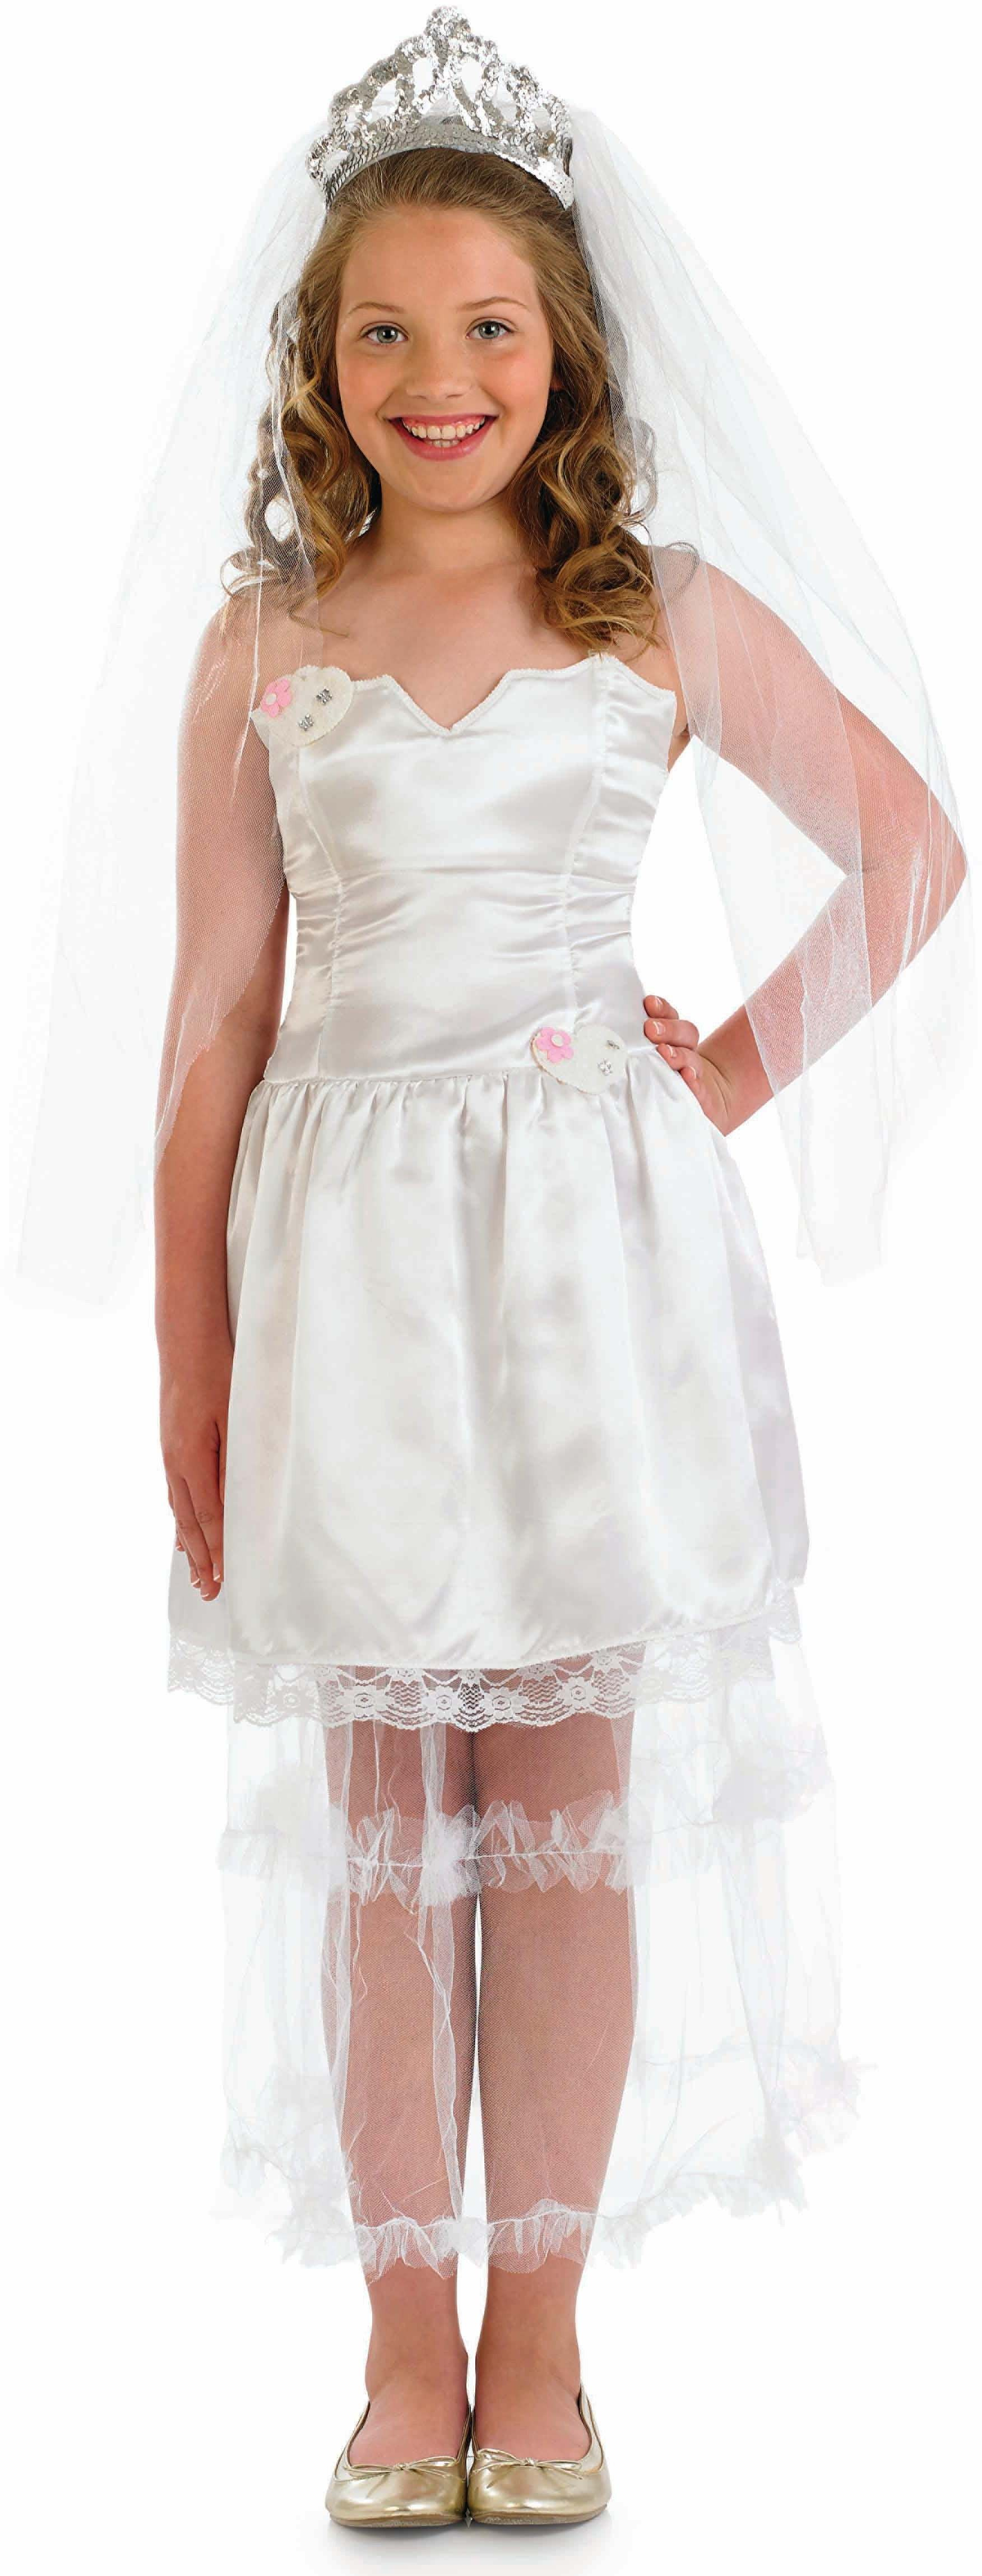 Girls Bride Bride Outfit - (White)